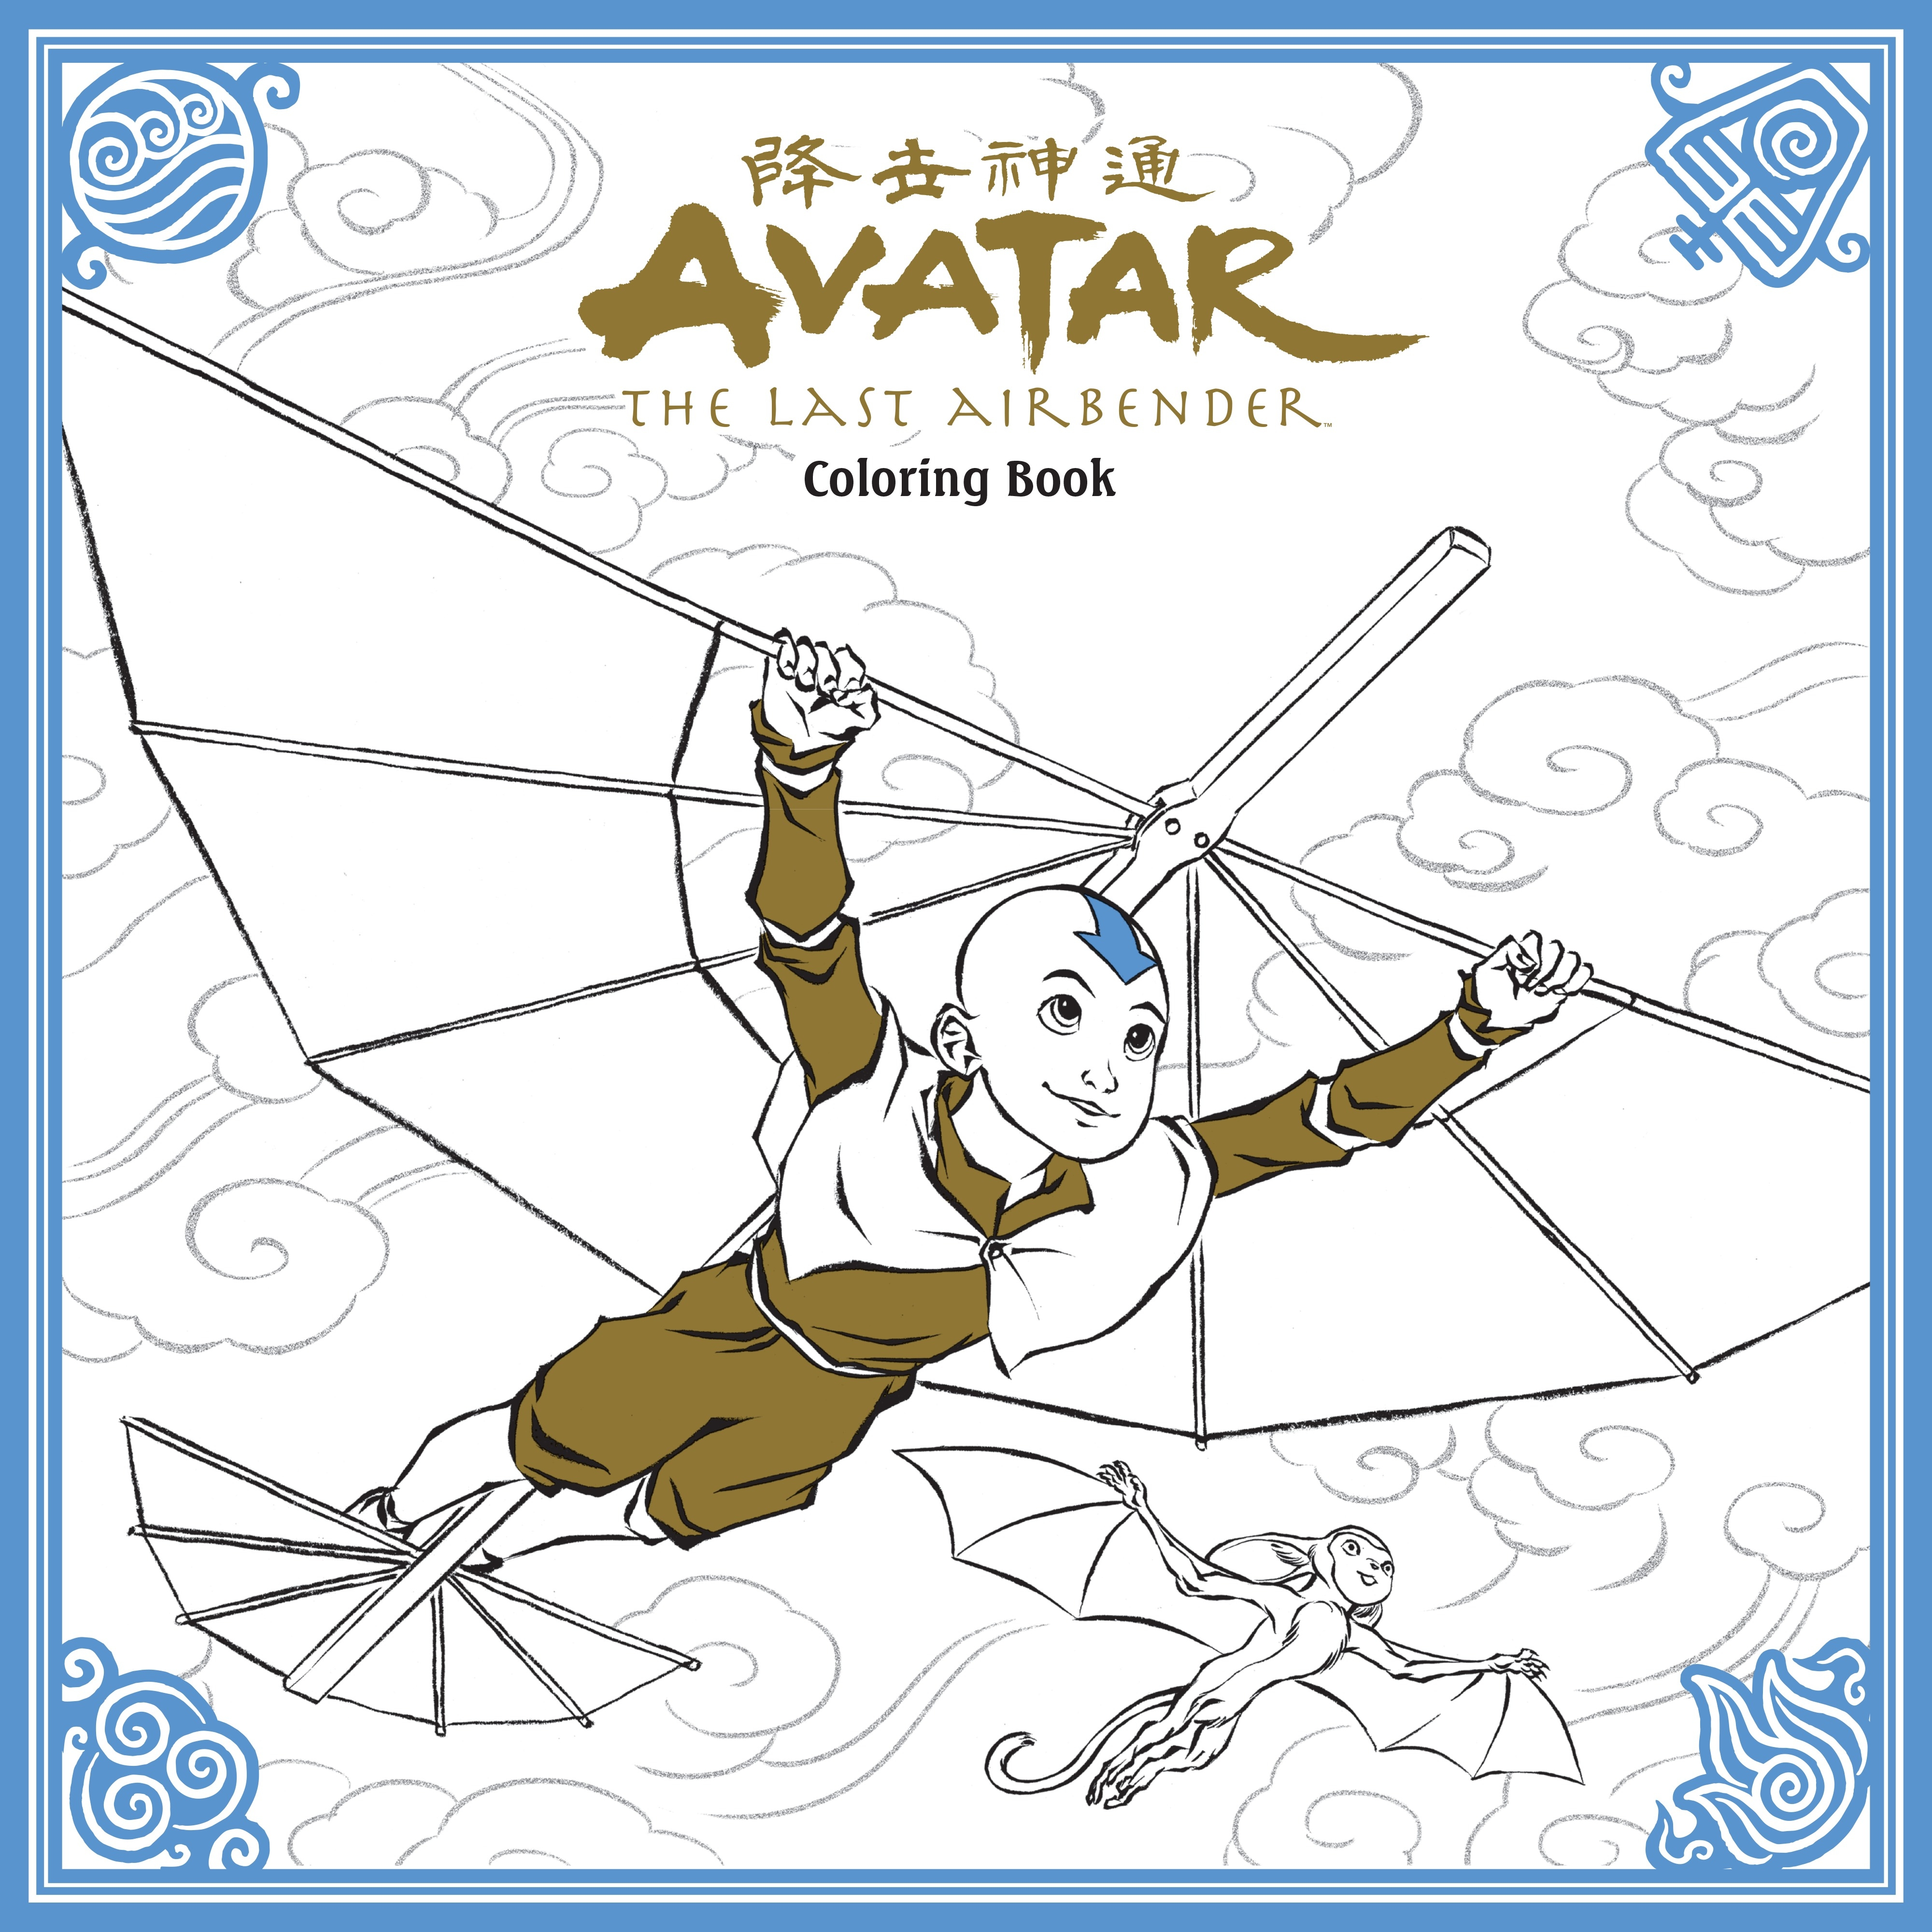 colouring books for adults in australia : Ad Adults Colouring Books Australia Avatar The Last Airbender Adult Coloring Book